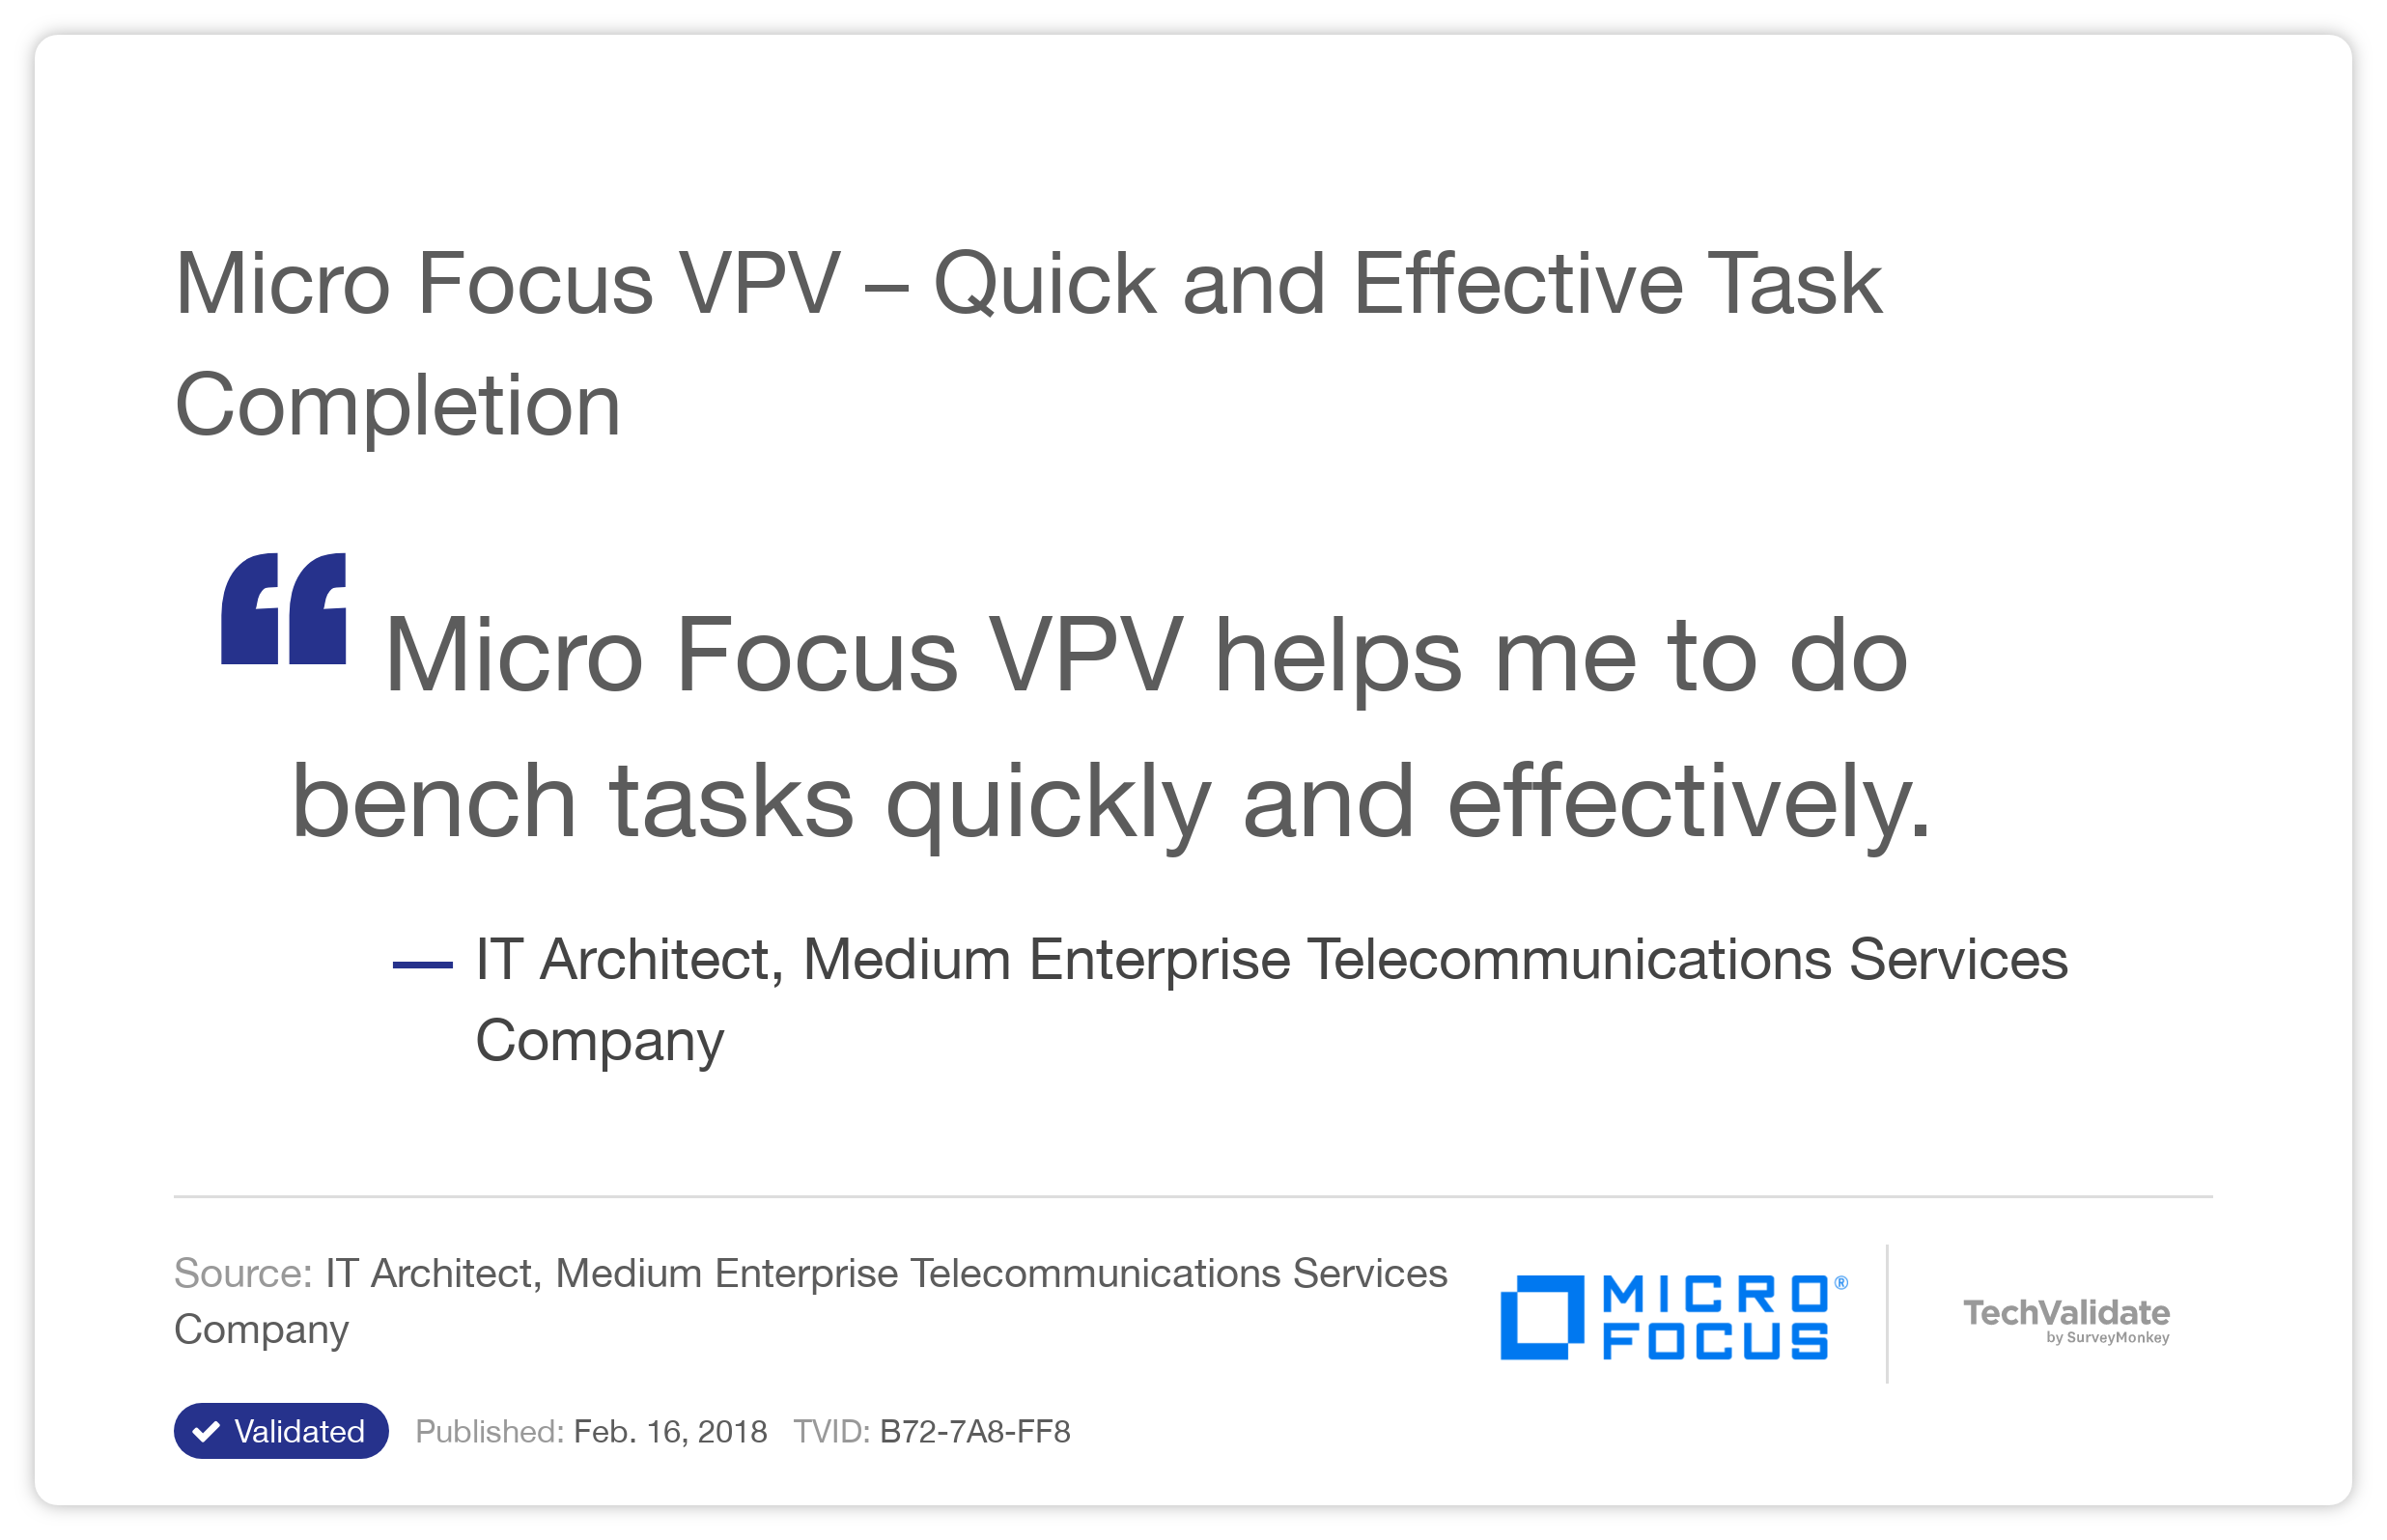 HP VPV - Quick and Effective Task Completion